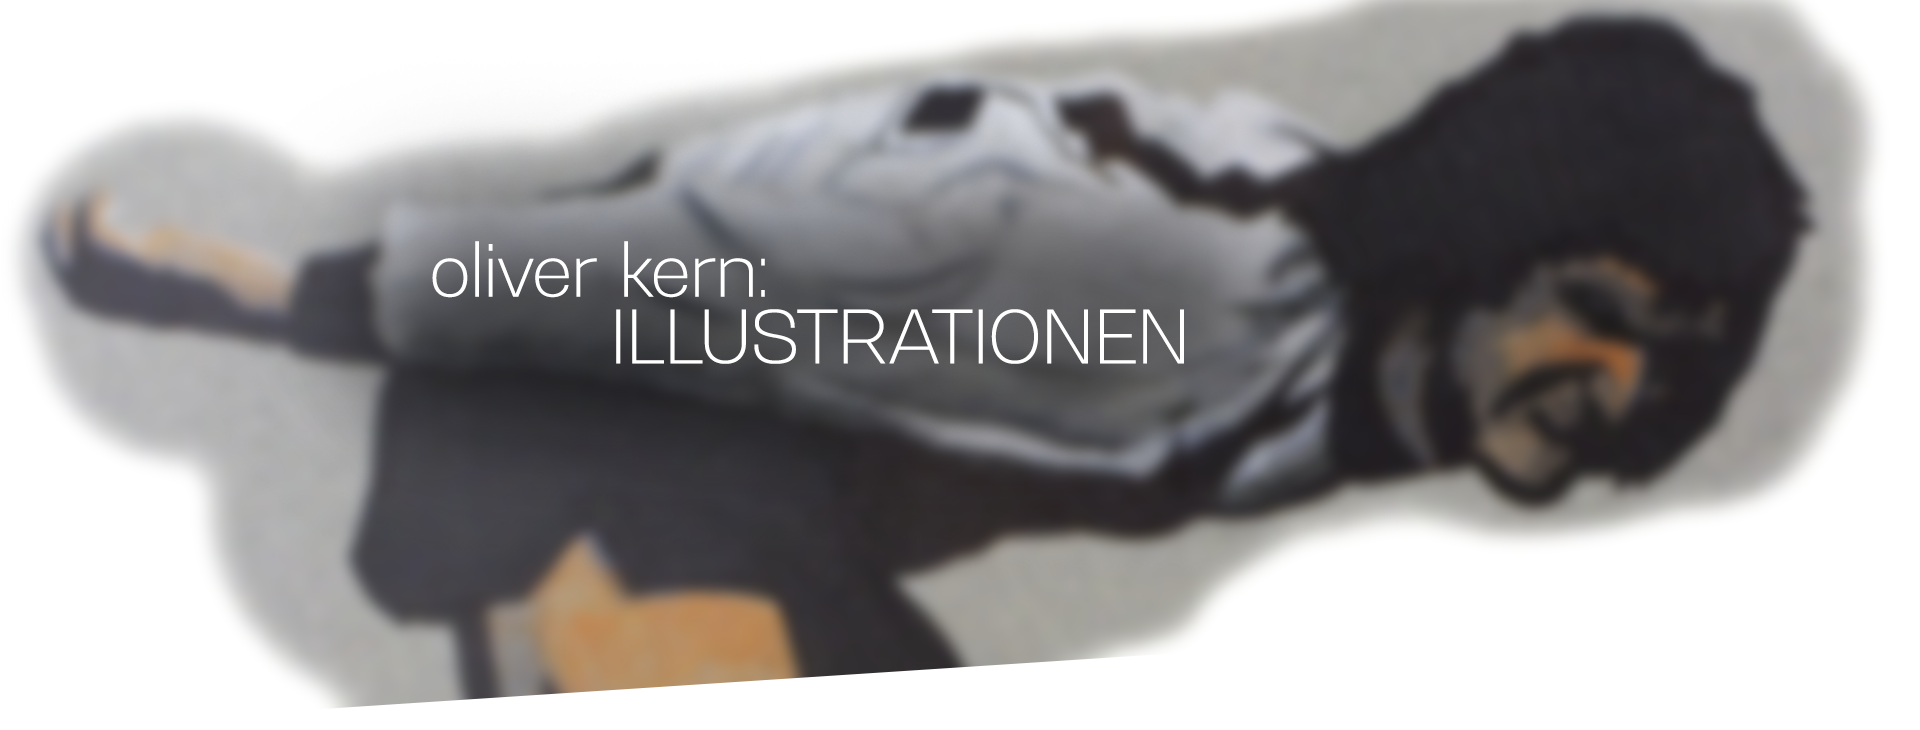 oliver-kern-illustrationen_header_sml